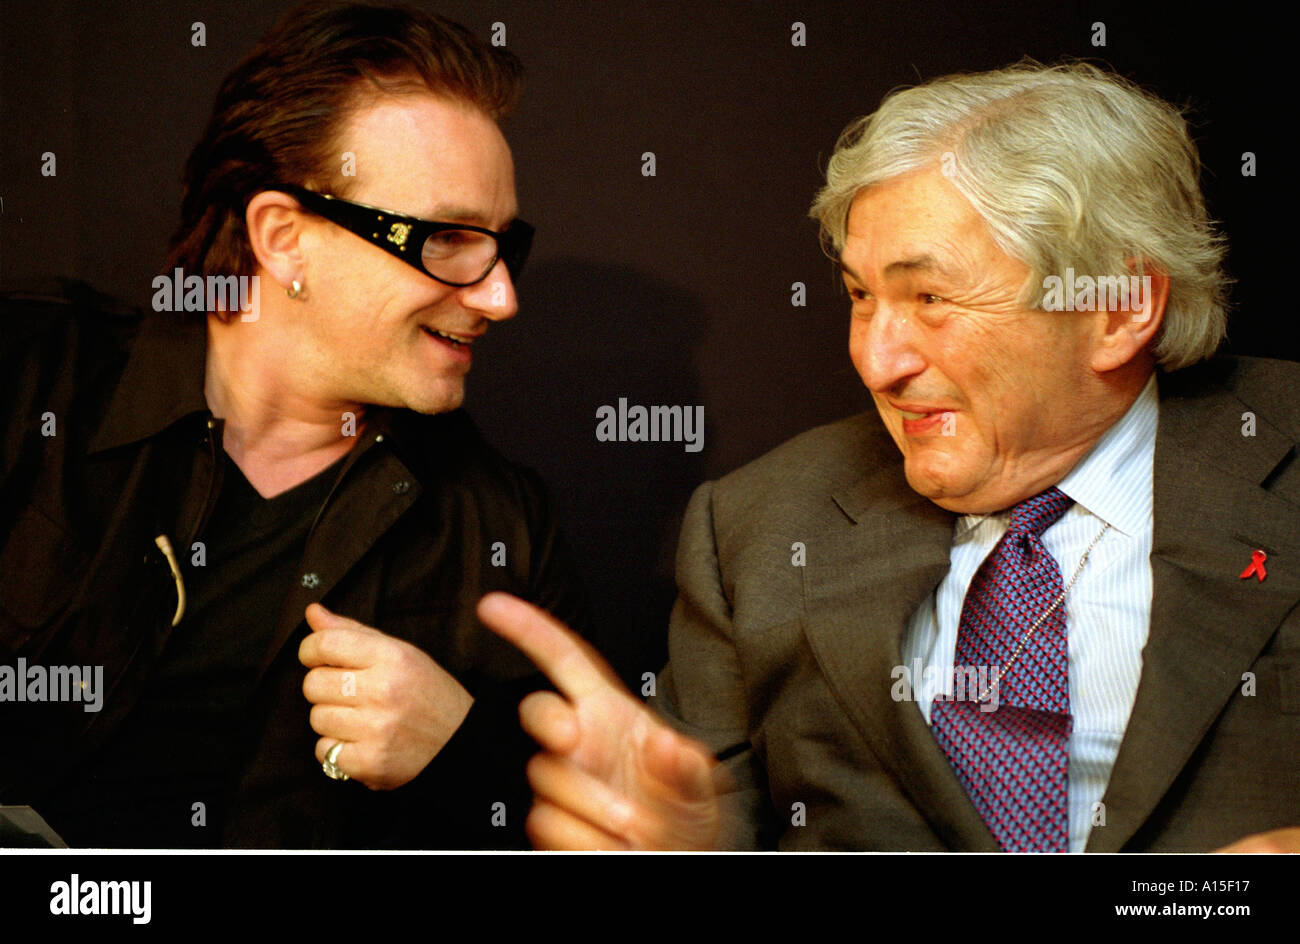 Bono from the rock band U2 speaks with the President of the World Bank James D Wolfensohn at a press conference - Stock Image